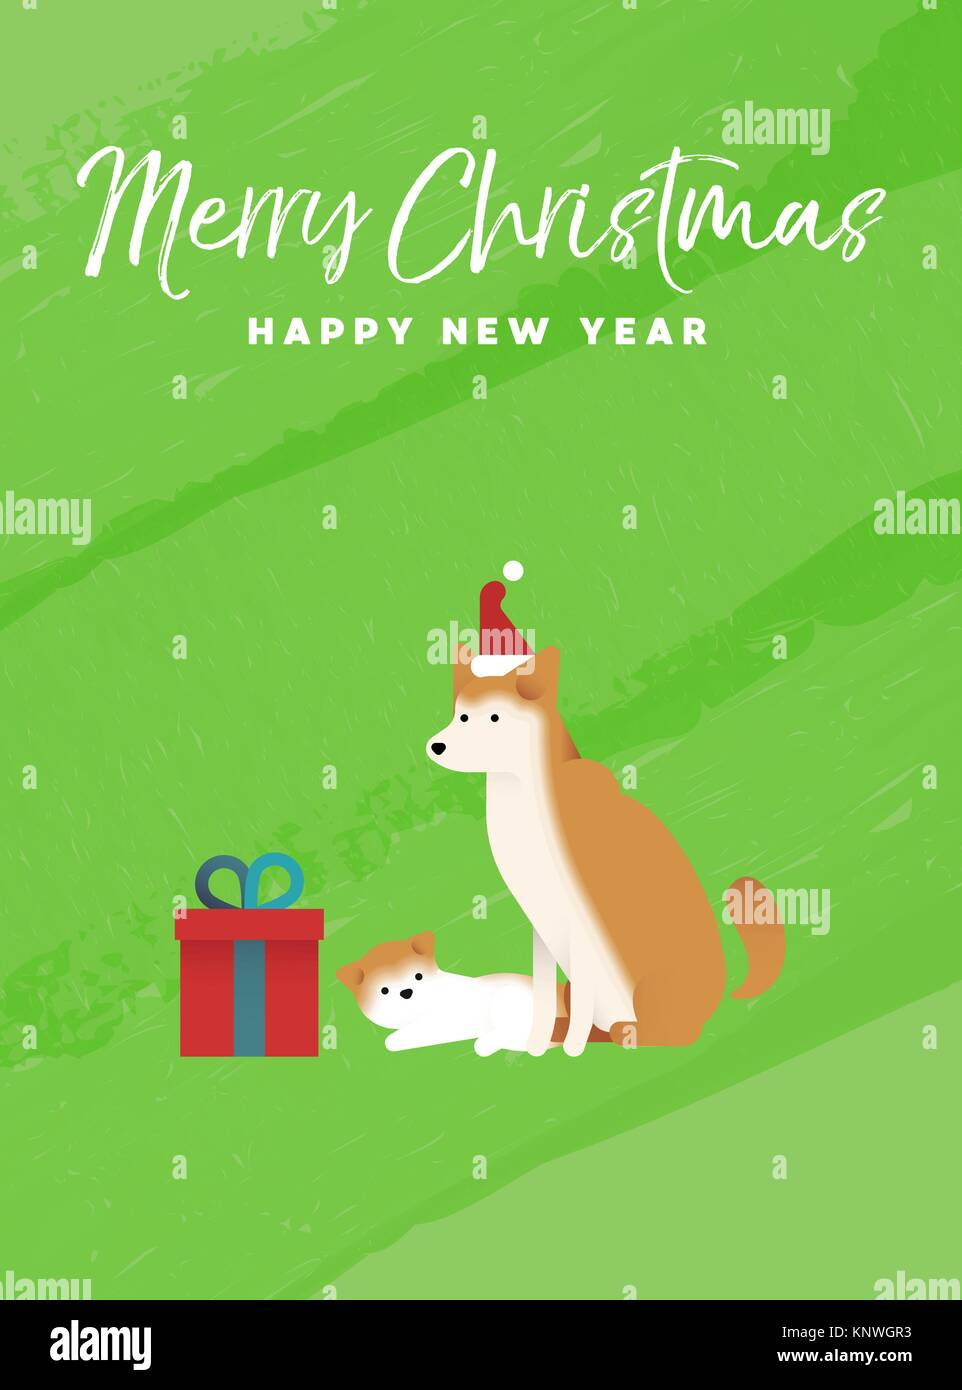 Merry christmas and happy new year holiday greeting card stock merry christmas and happy new year holiday greeting card illustration shiba inu dog and puppy on colorful texture background eps10 vector m4hsunfo